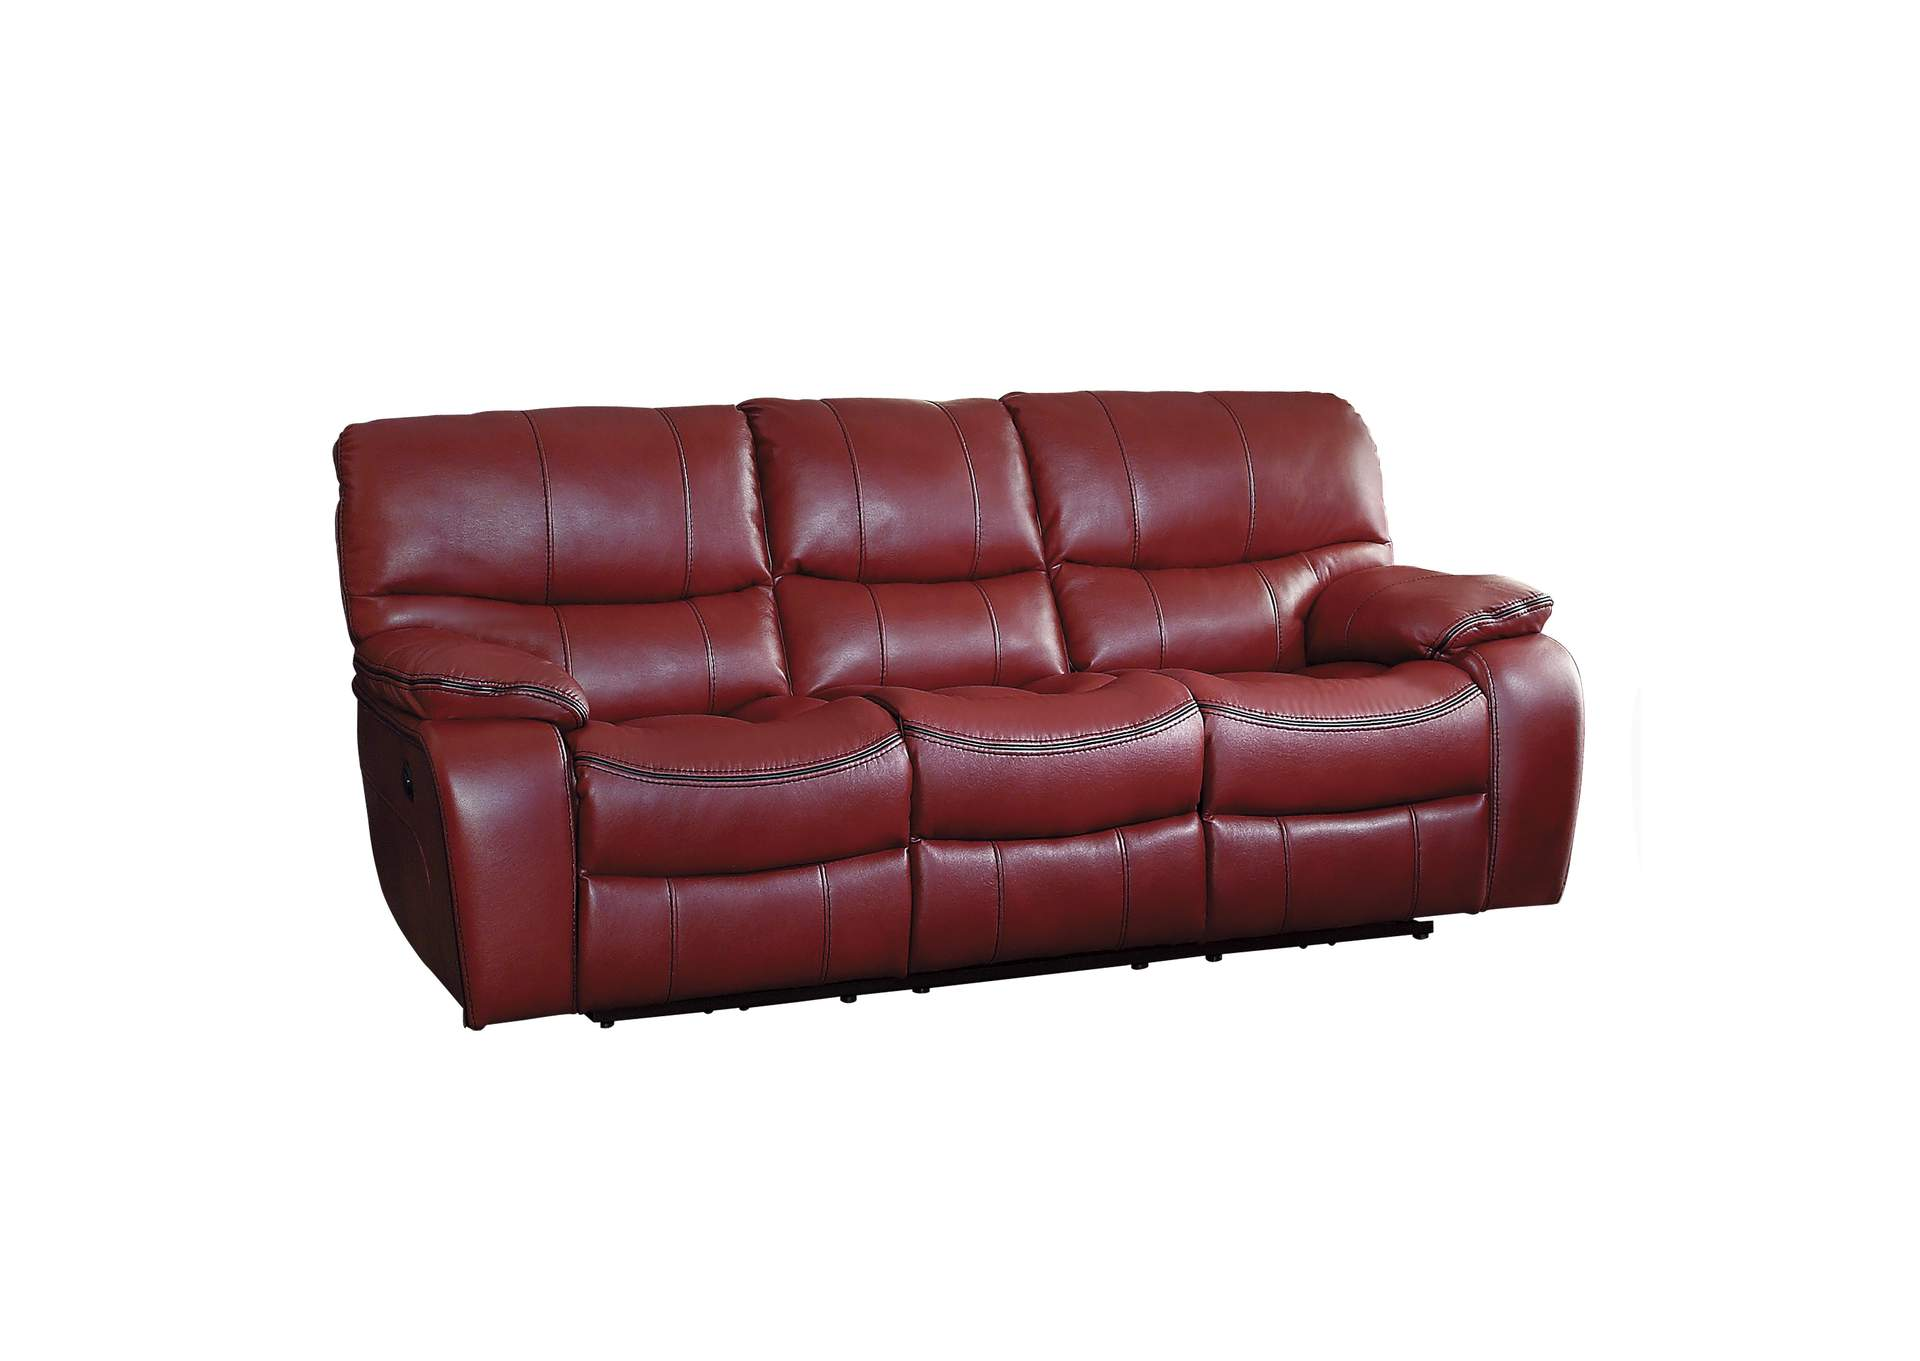 Red Power Double Reclining Sofa,Homelegance